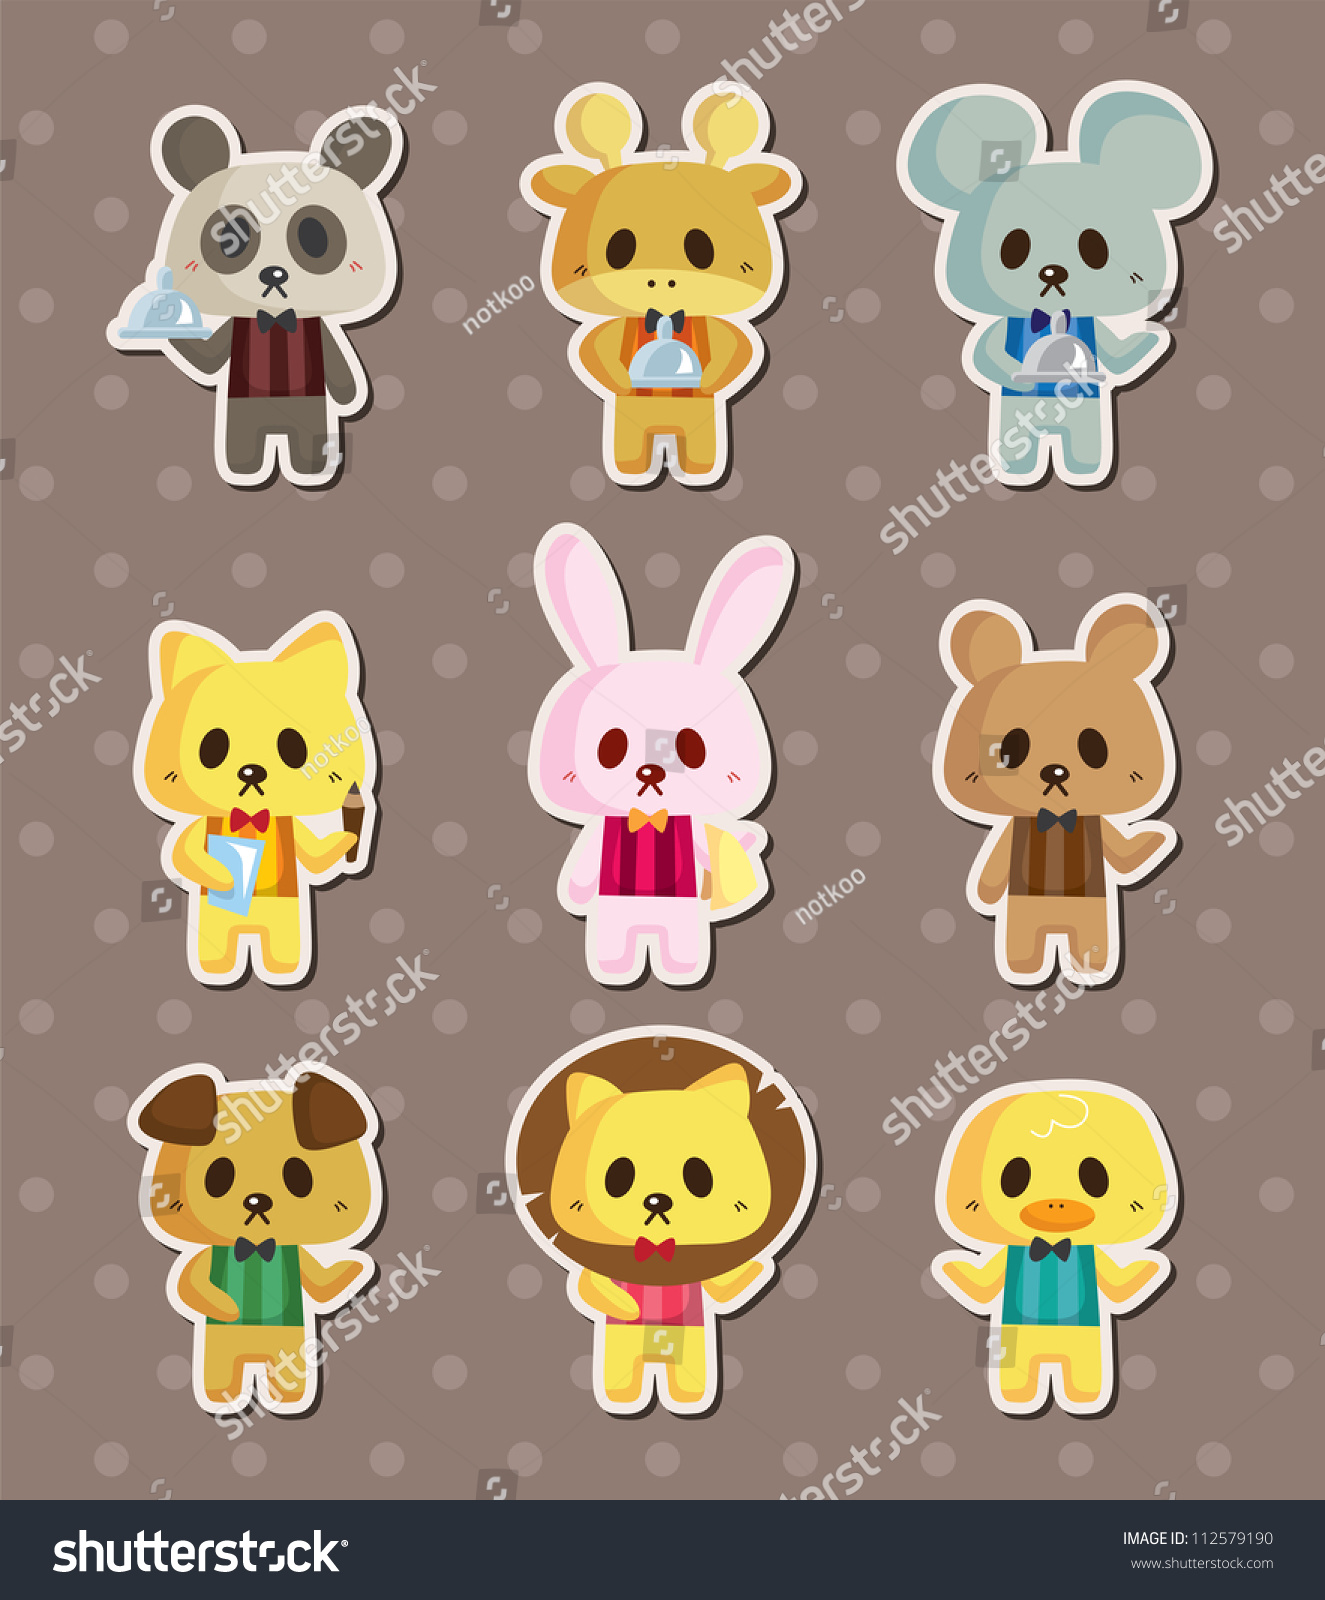 cartoon animal stickers in - photo #26